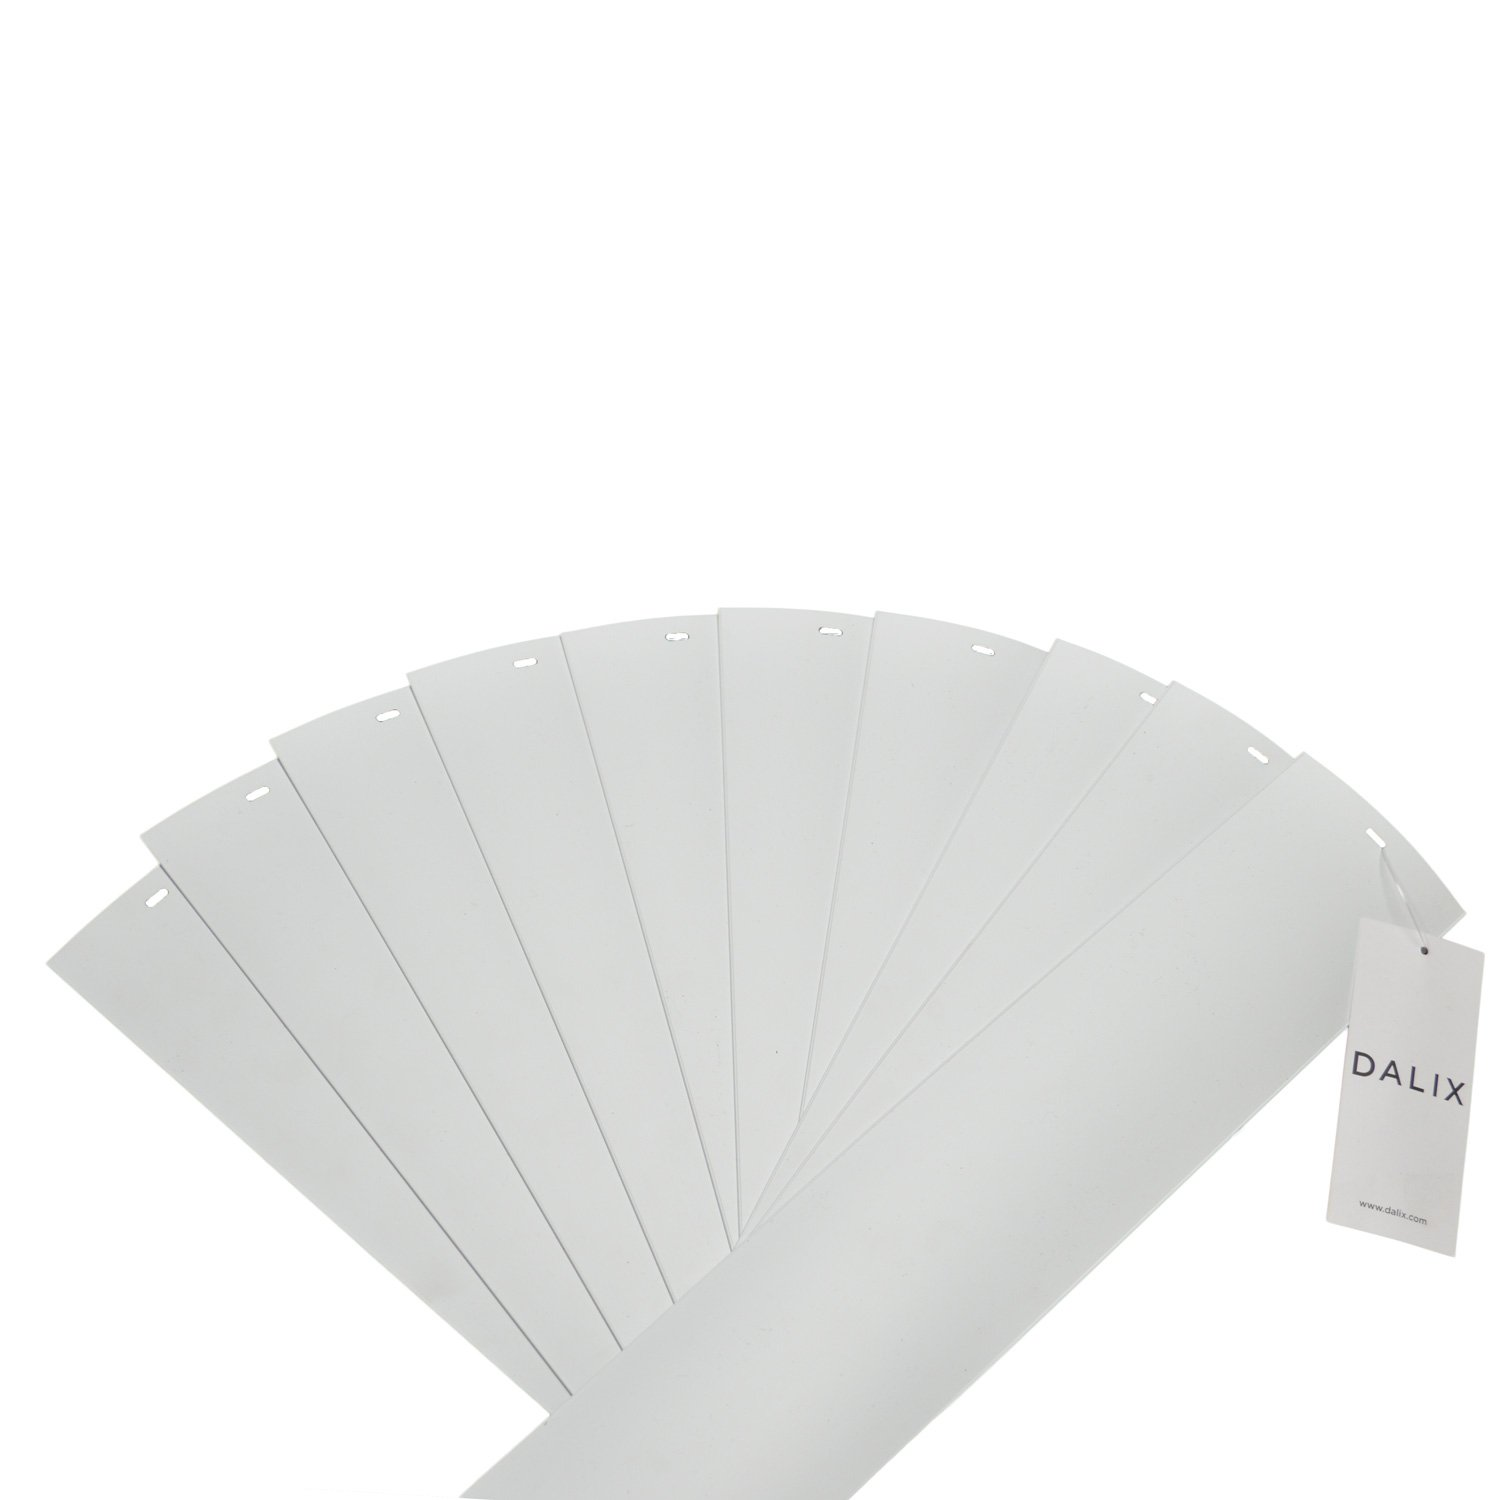 DALIX PVC Vertical Blind Replacement Slats Curved Smooth White 98.5 x 3.5 (5-Pack) PVC-SC-White-98.5-(5-Pack)